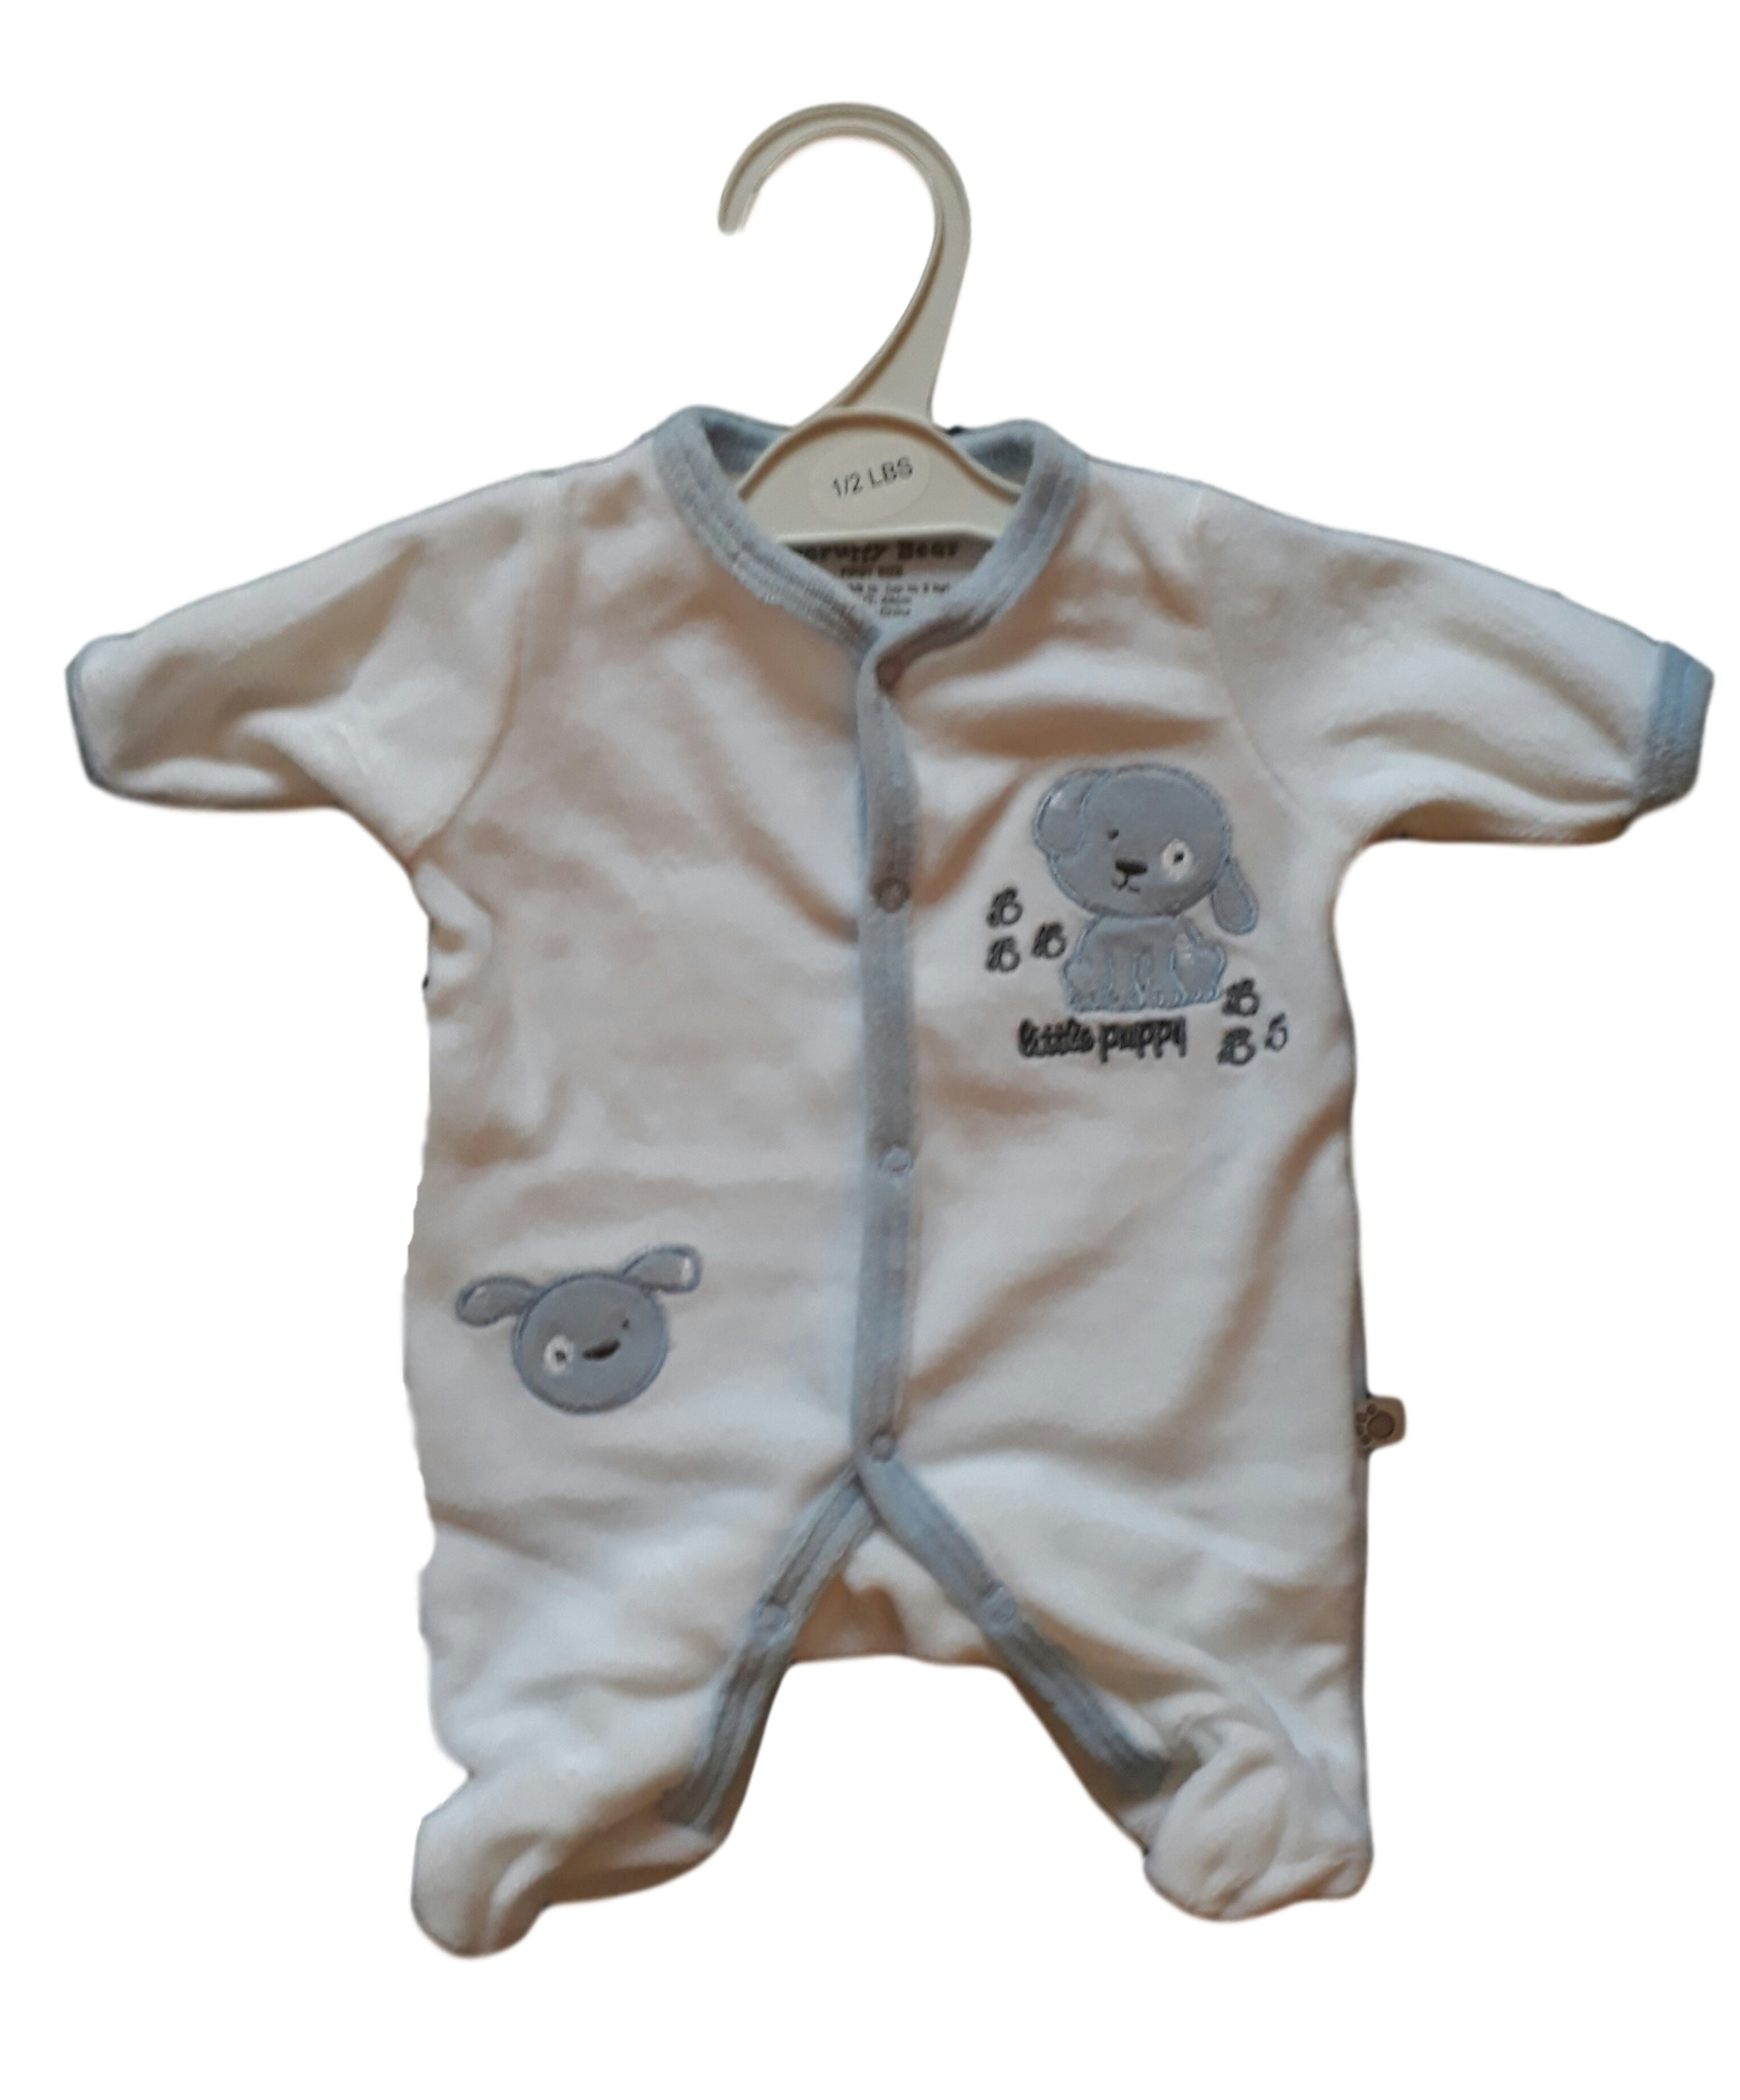 Premature early baby clothes grow velour LITTLE PUP design ALL SIZES